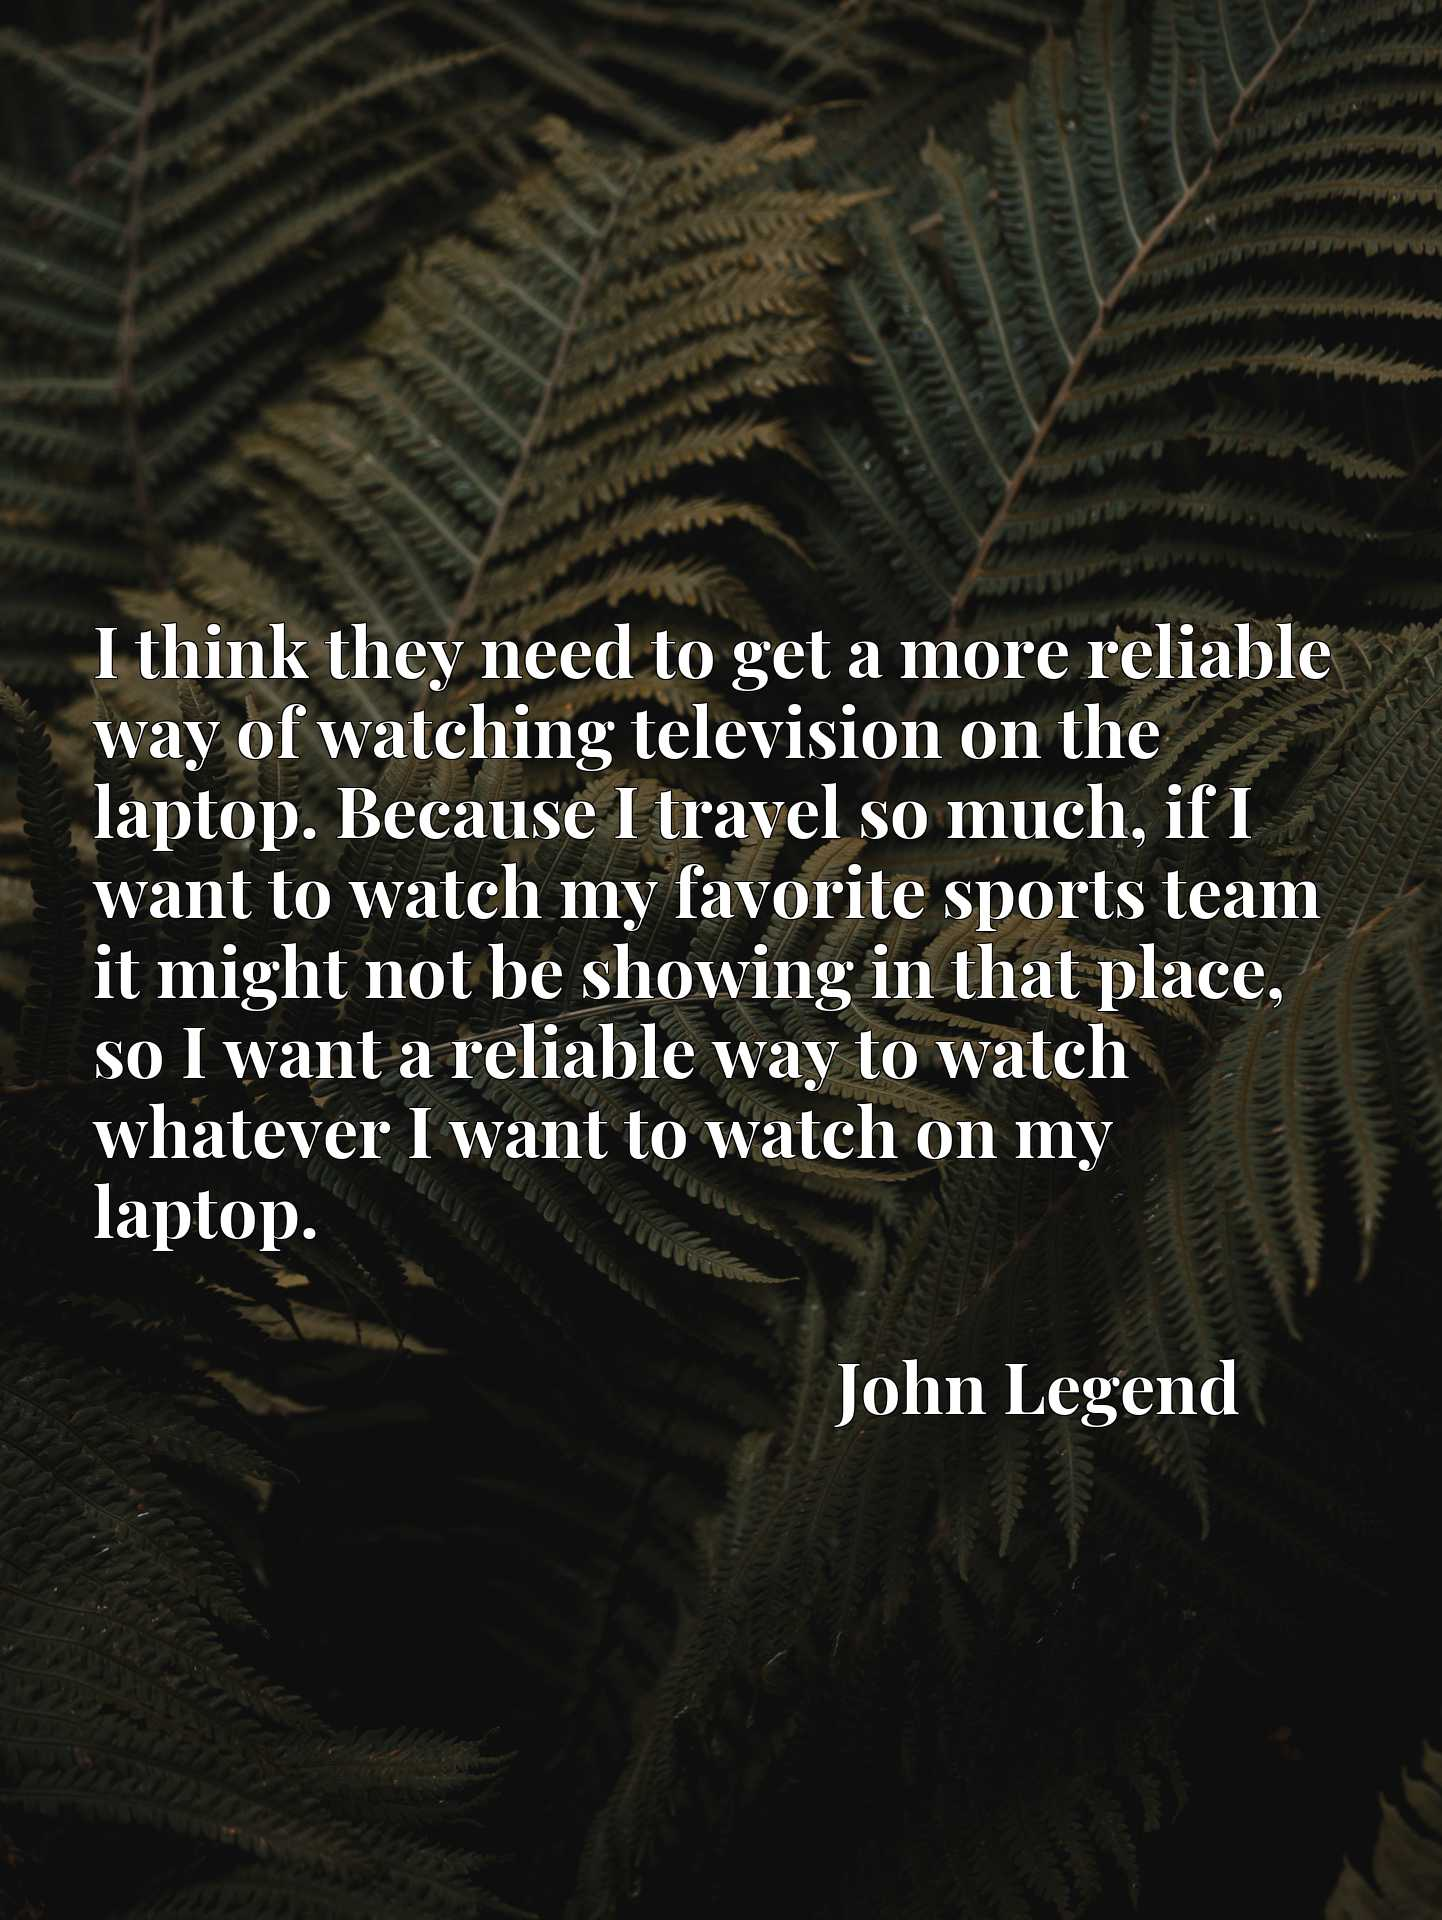 I think they need to get a more reliable way of watching television on the laptop. Because I travel so much, if I want to watch my favorite sports team it might not be showing in that place, so I want a reliable way to watch whatever I want to watch on my laptop.